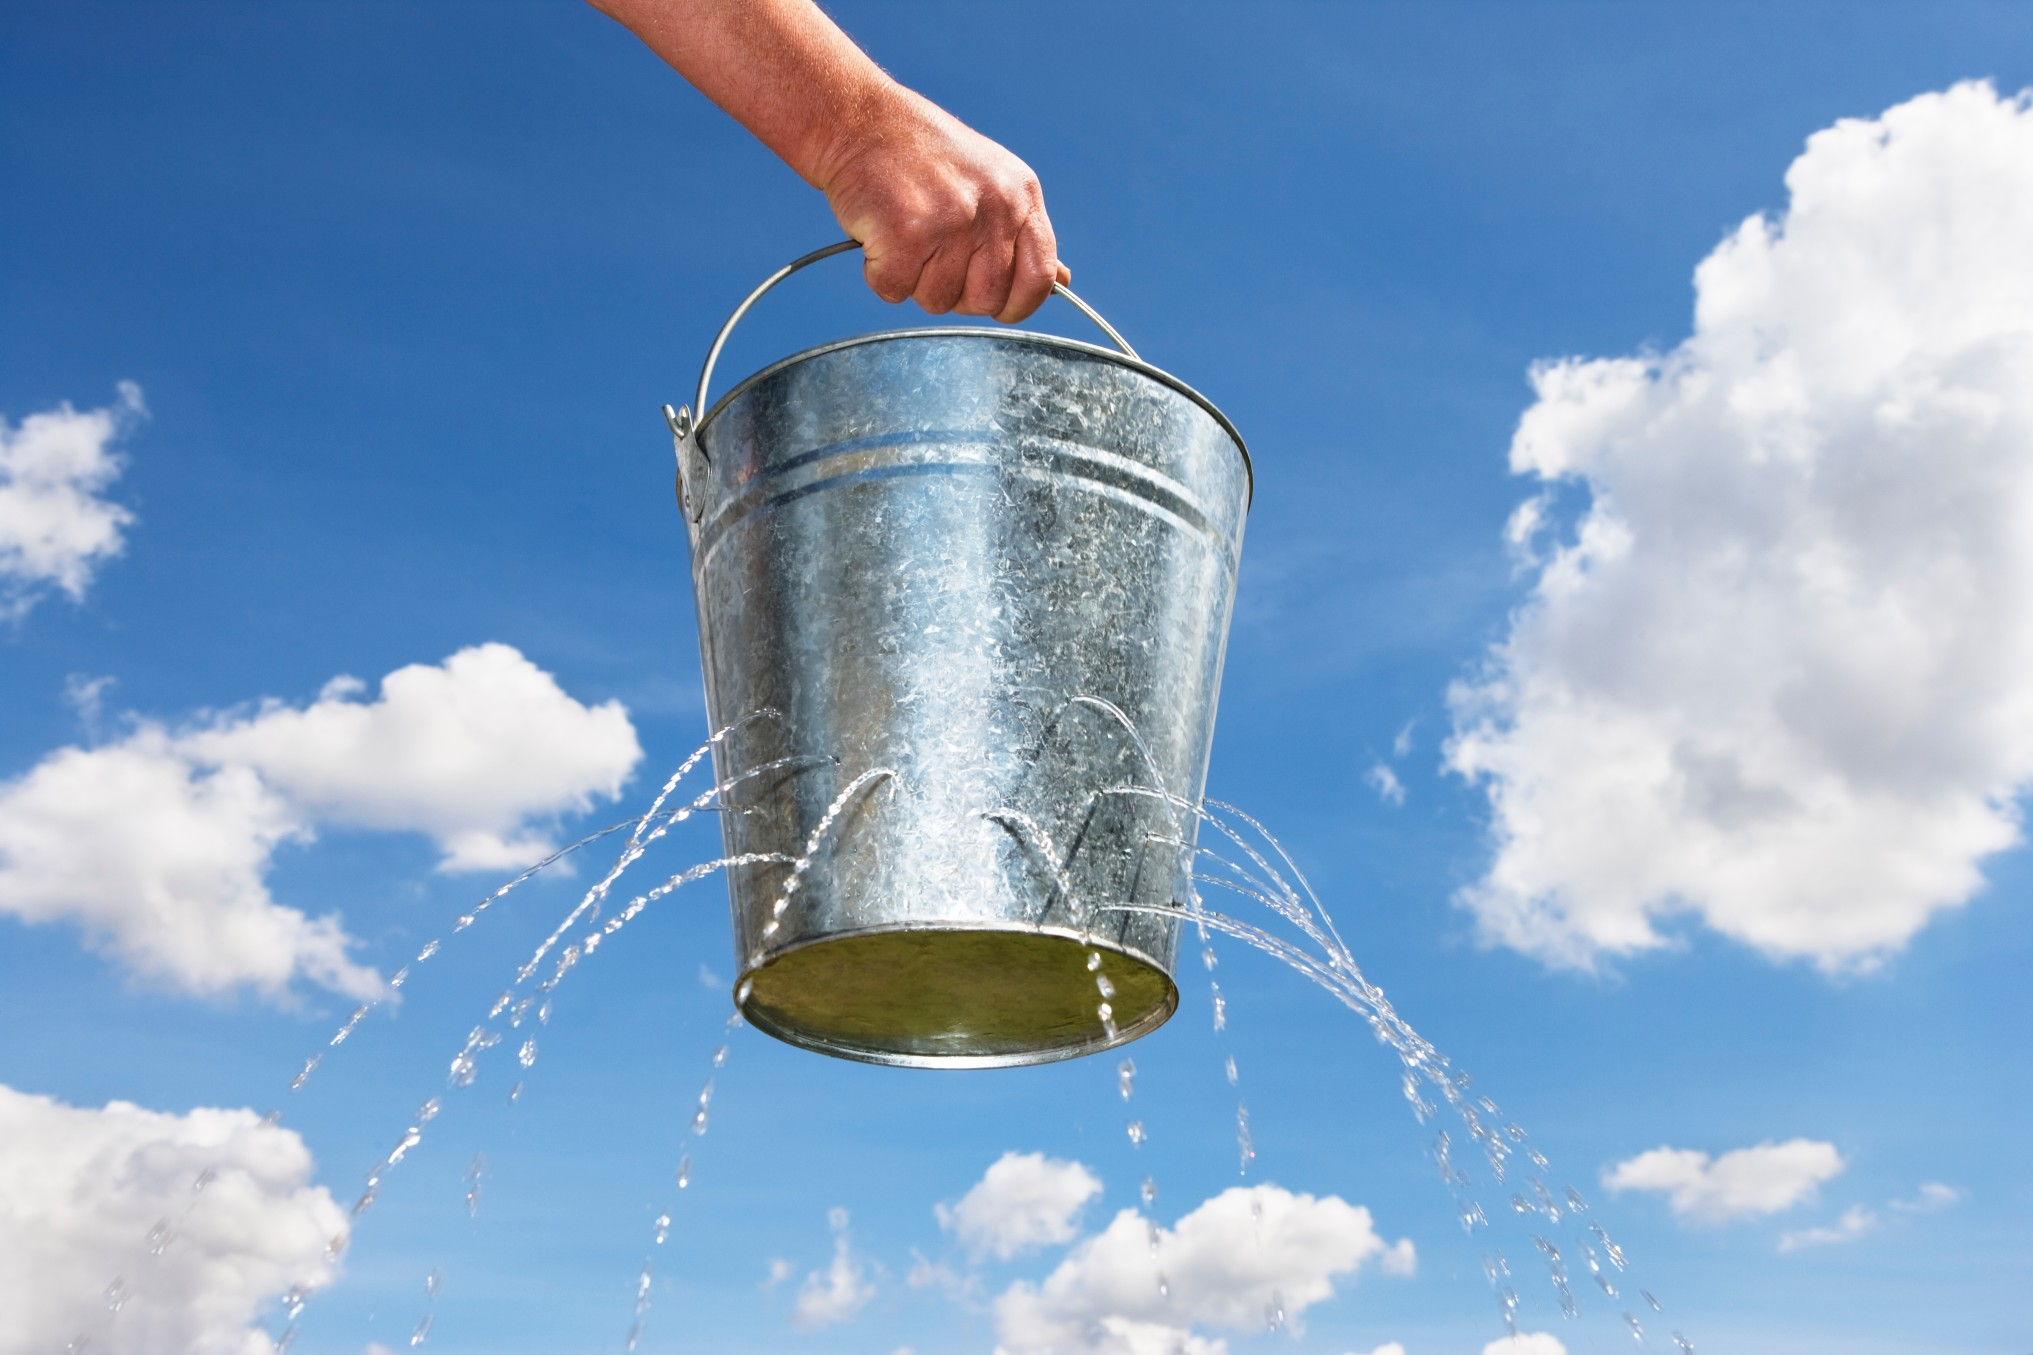 man-holding-bucket-with-holes-leaking-water_t20_0xZNjo